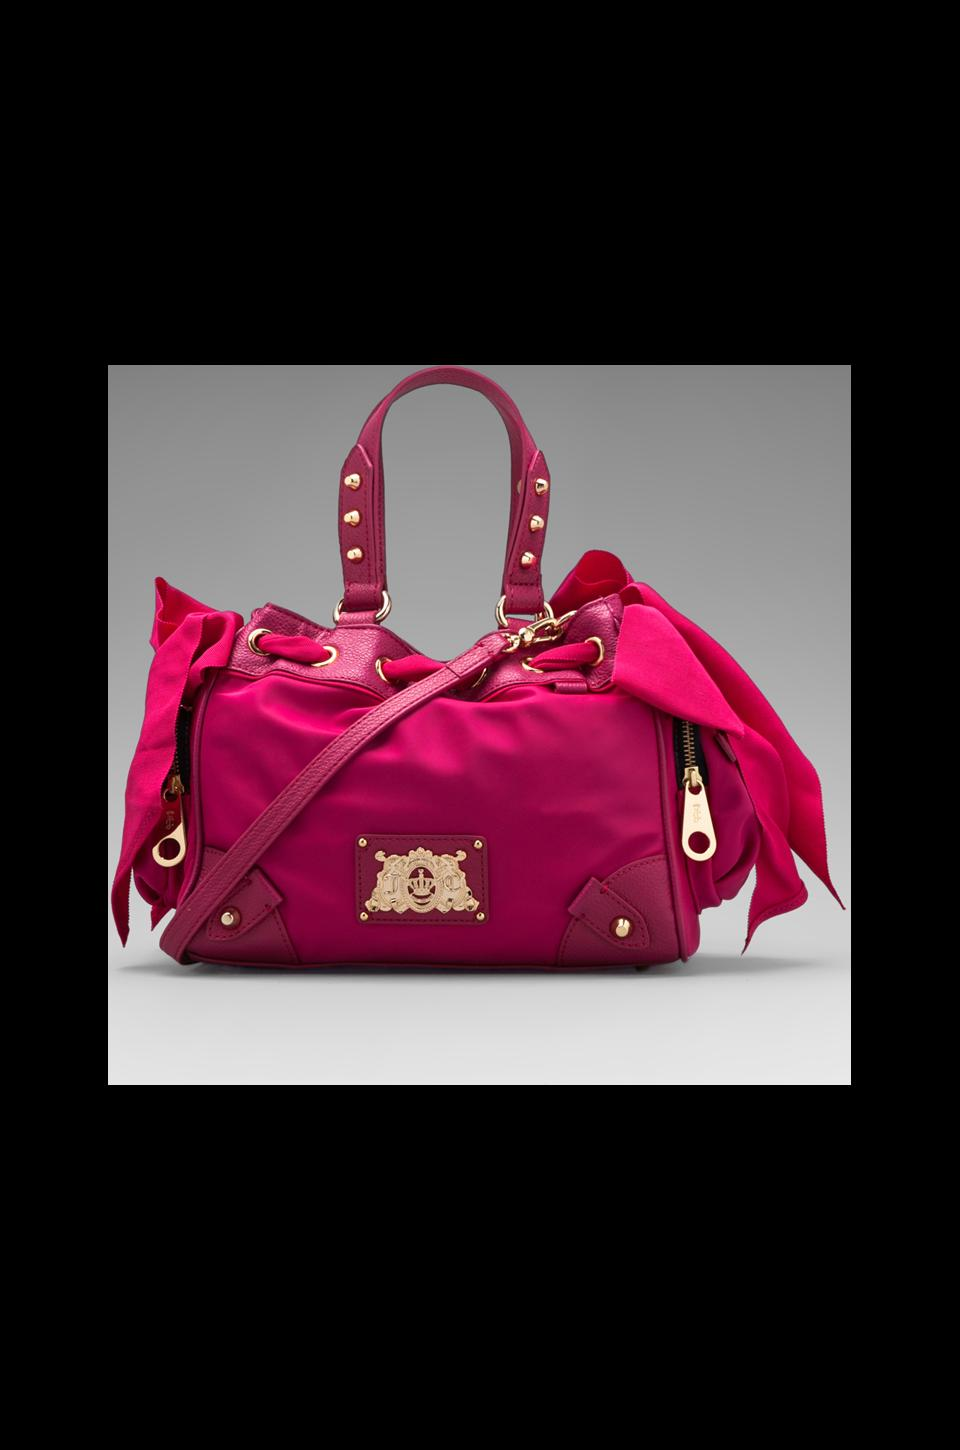 Juicy Couture East Everyday Mini Daydreamer in Hot Pink